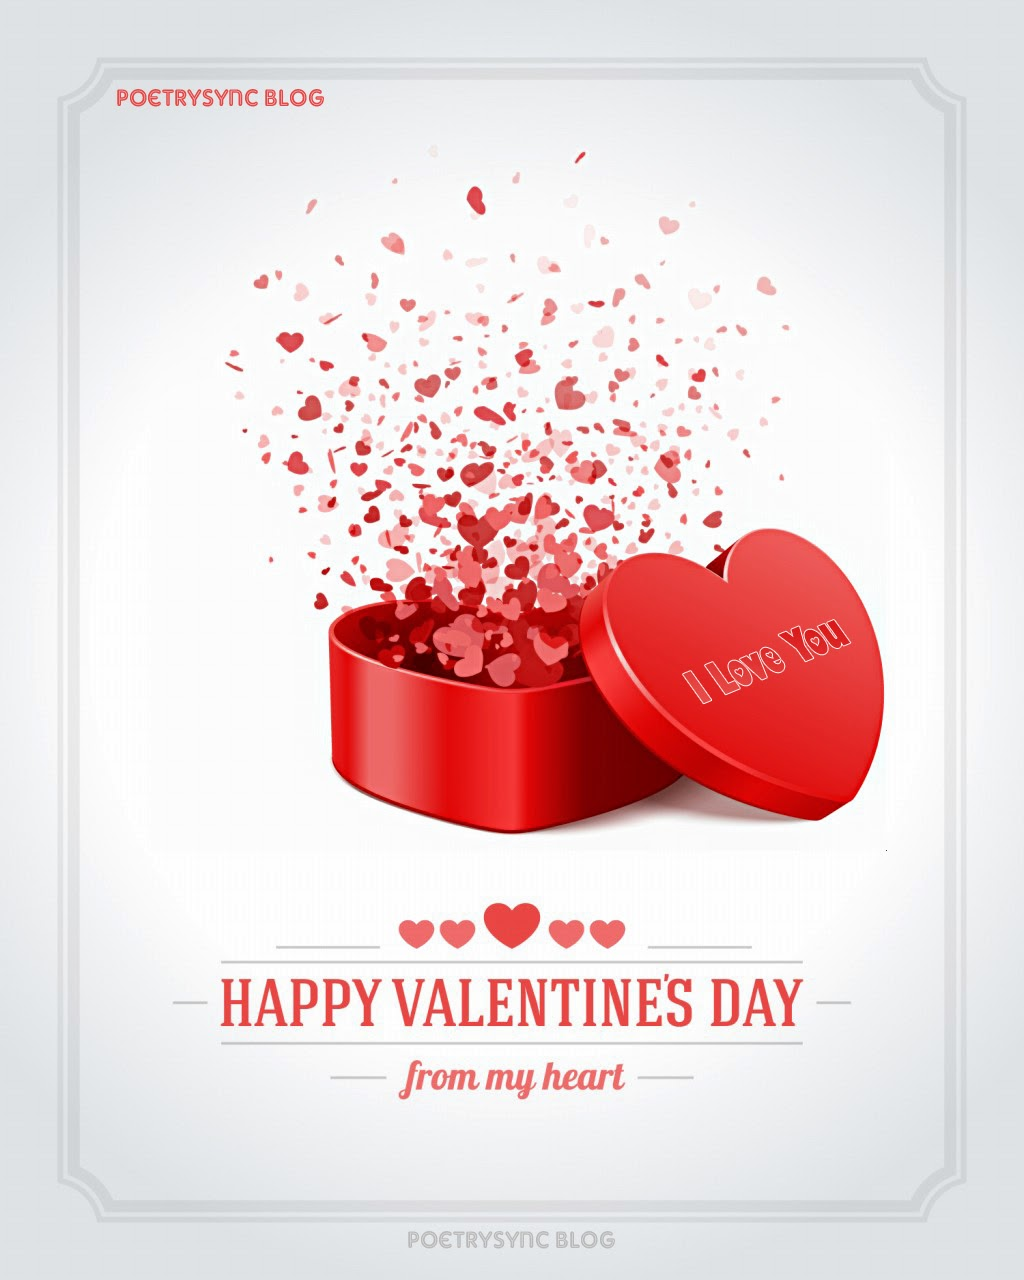 Happy valentines day quotes for him quotesgram for Love valentines day quotes